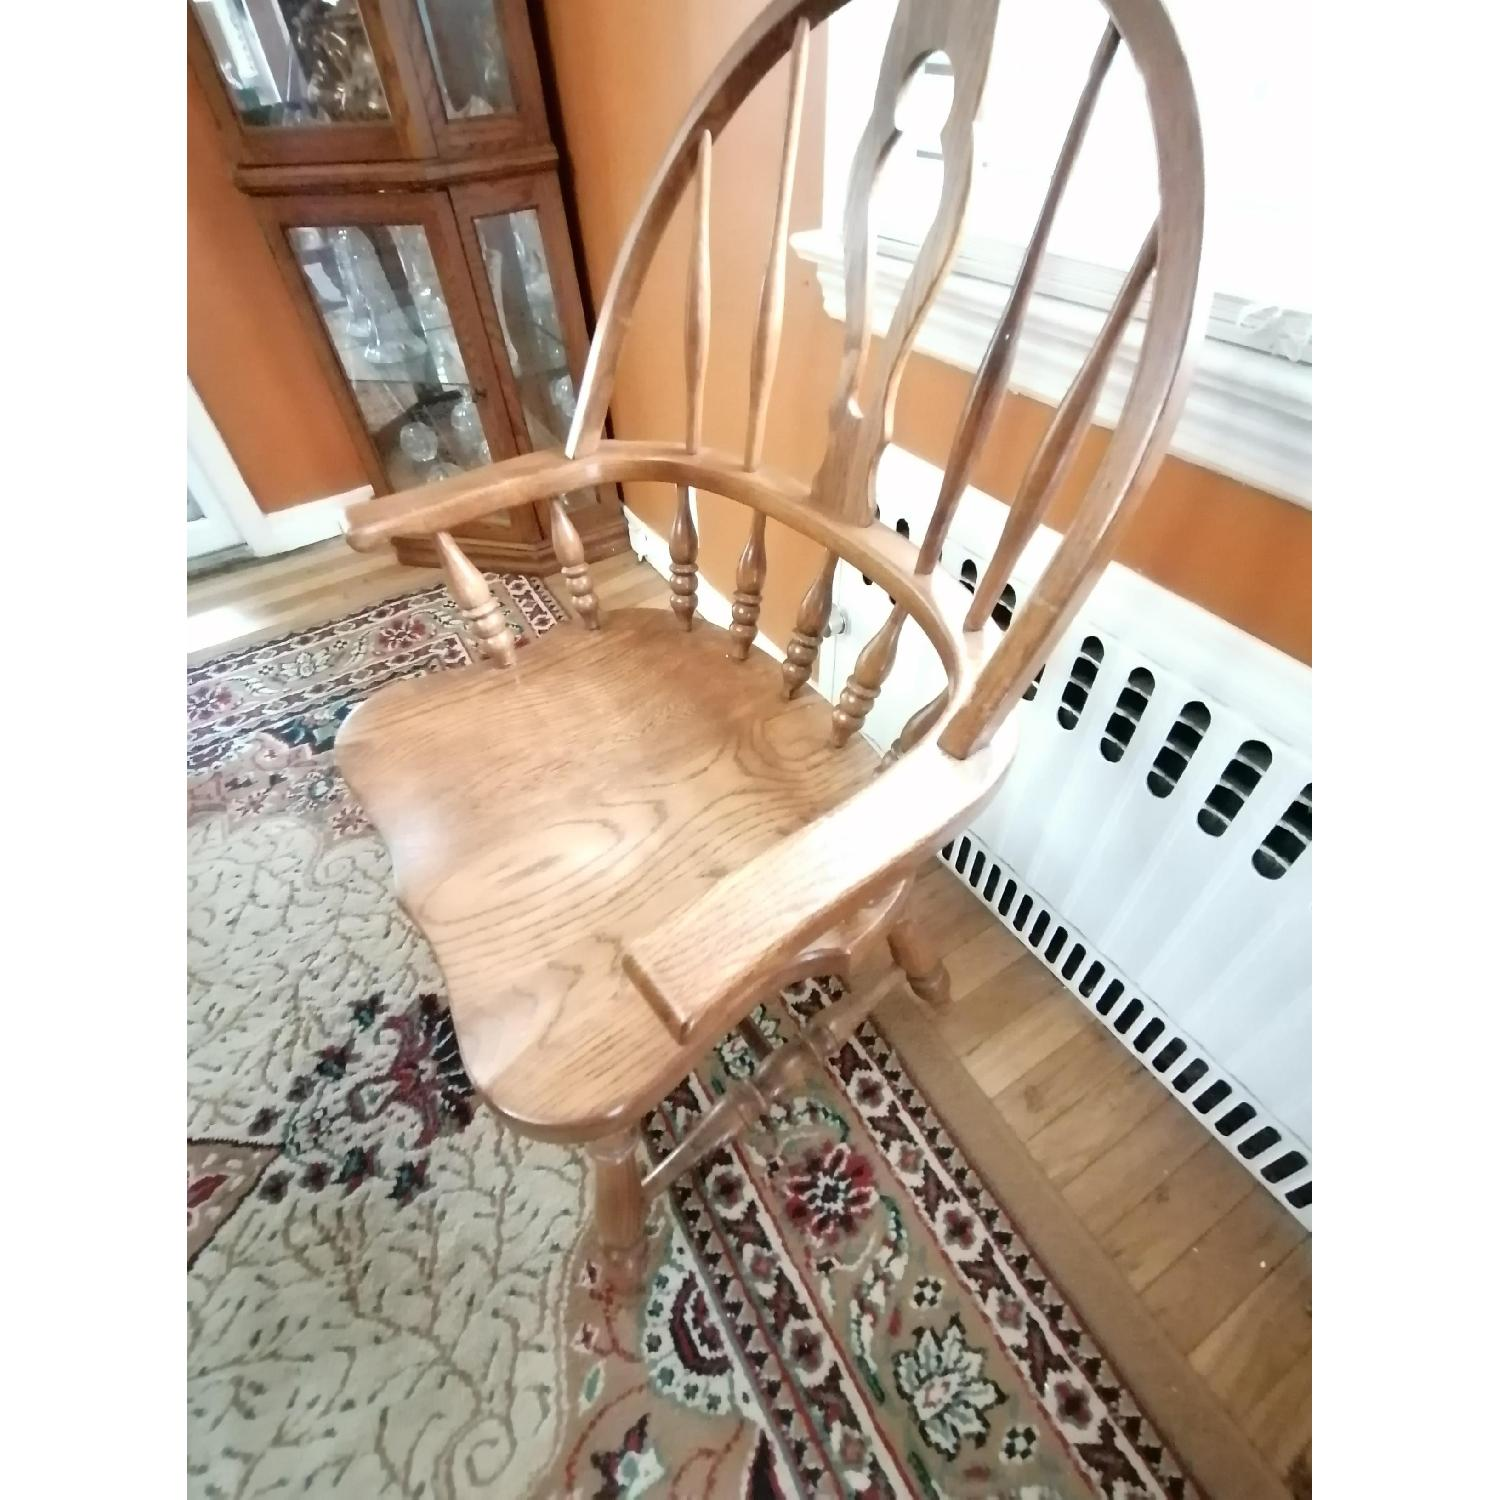 Raymour & Flanigan Extendable Dining Table w/ 6 Chairs - image-7